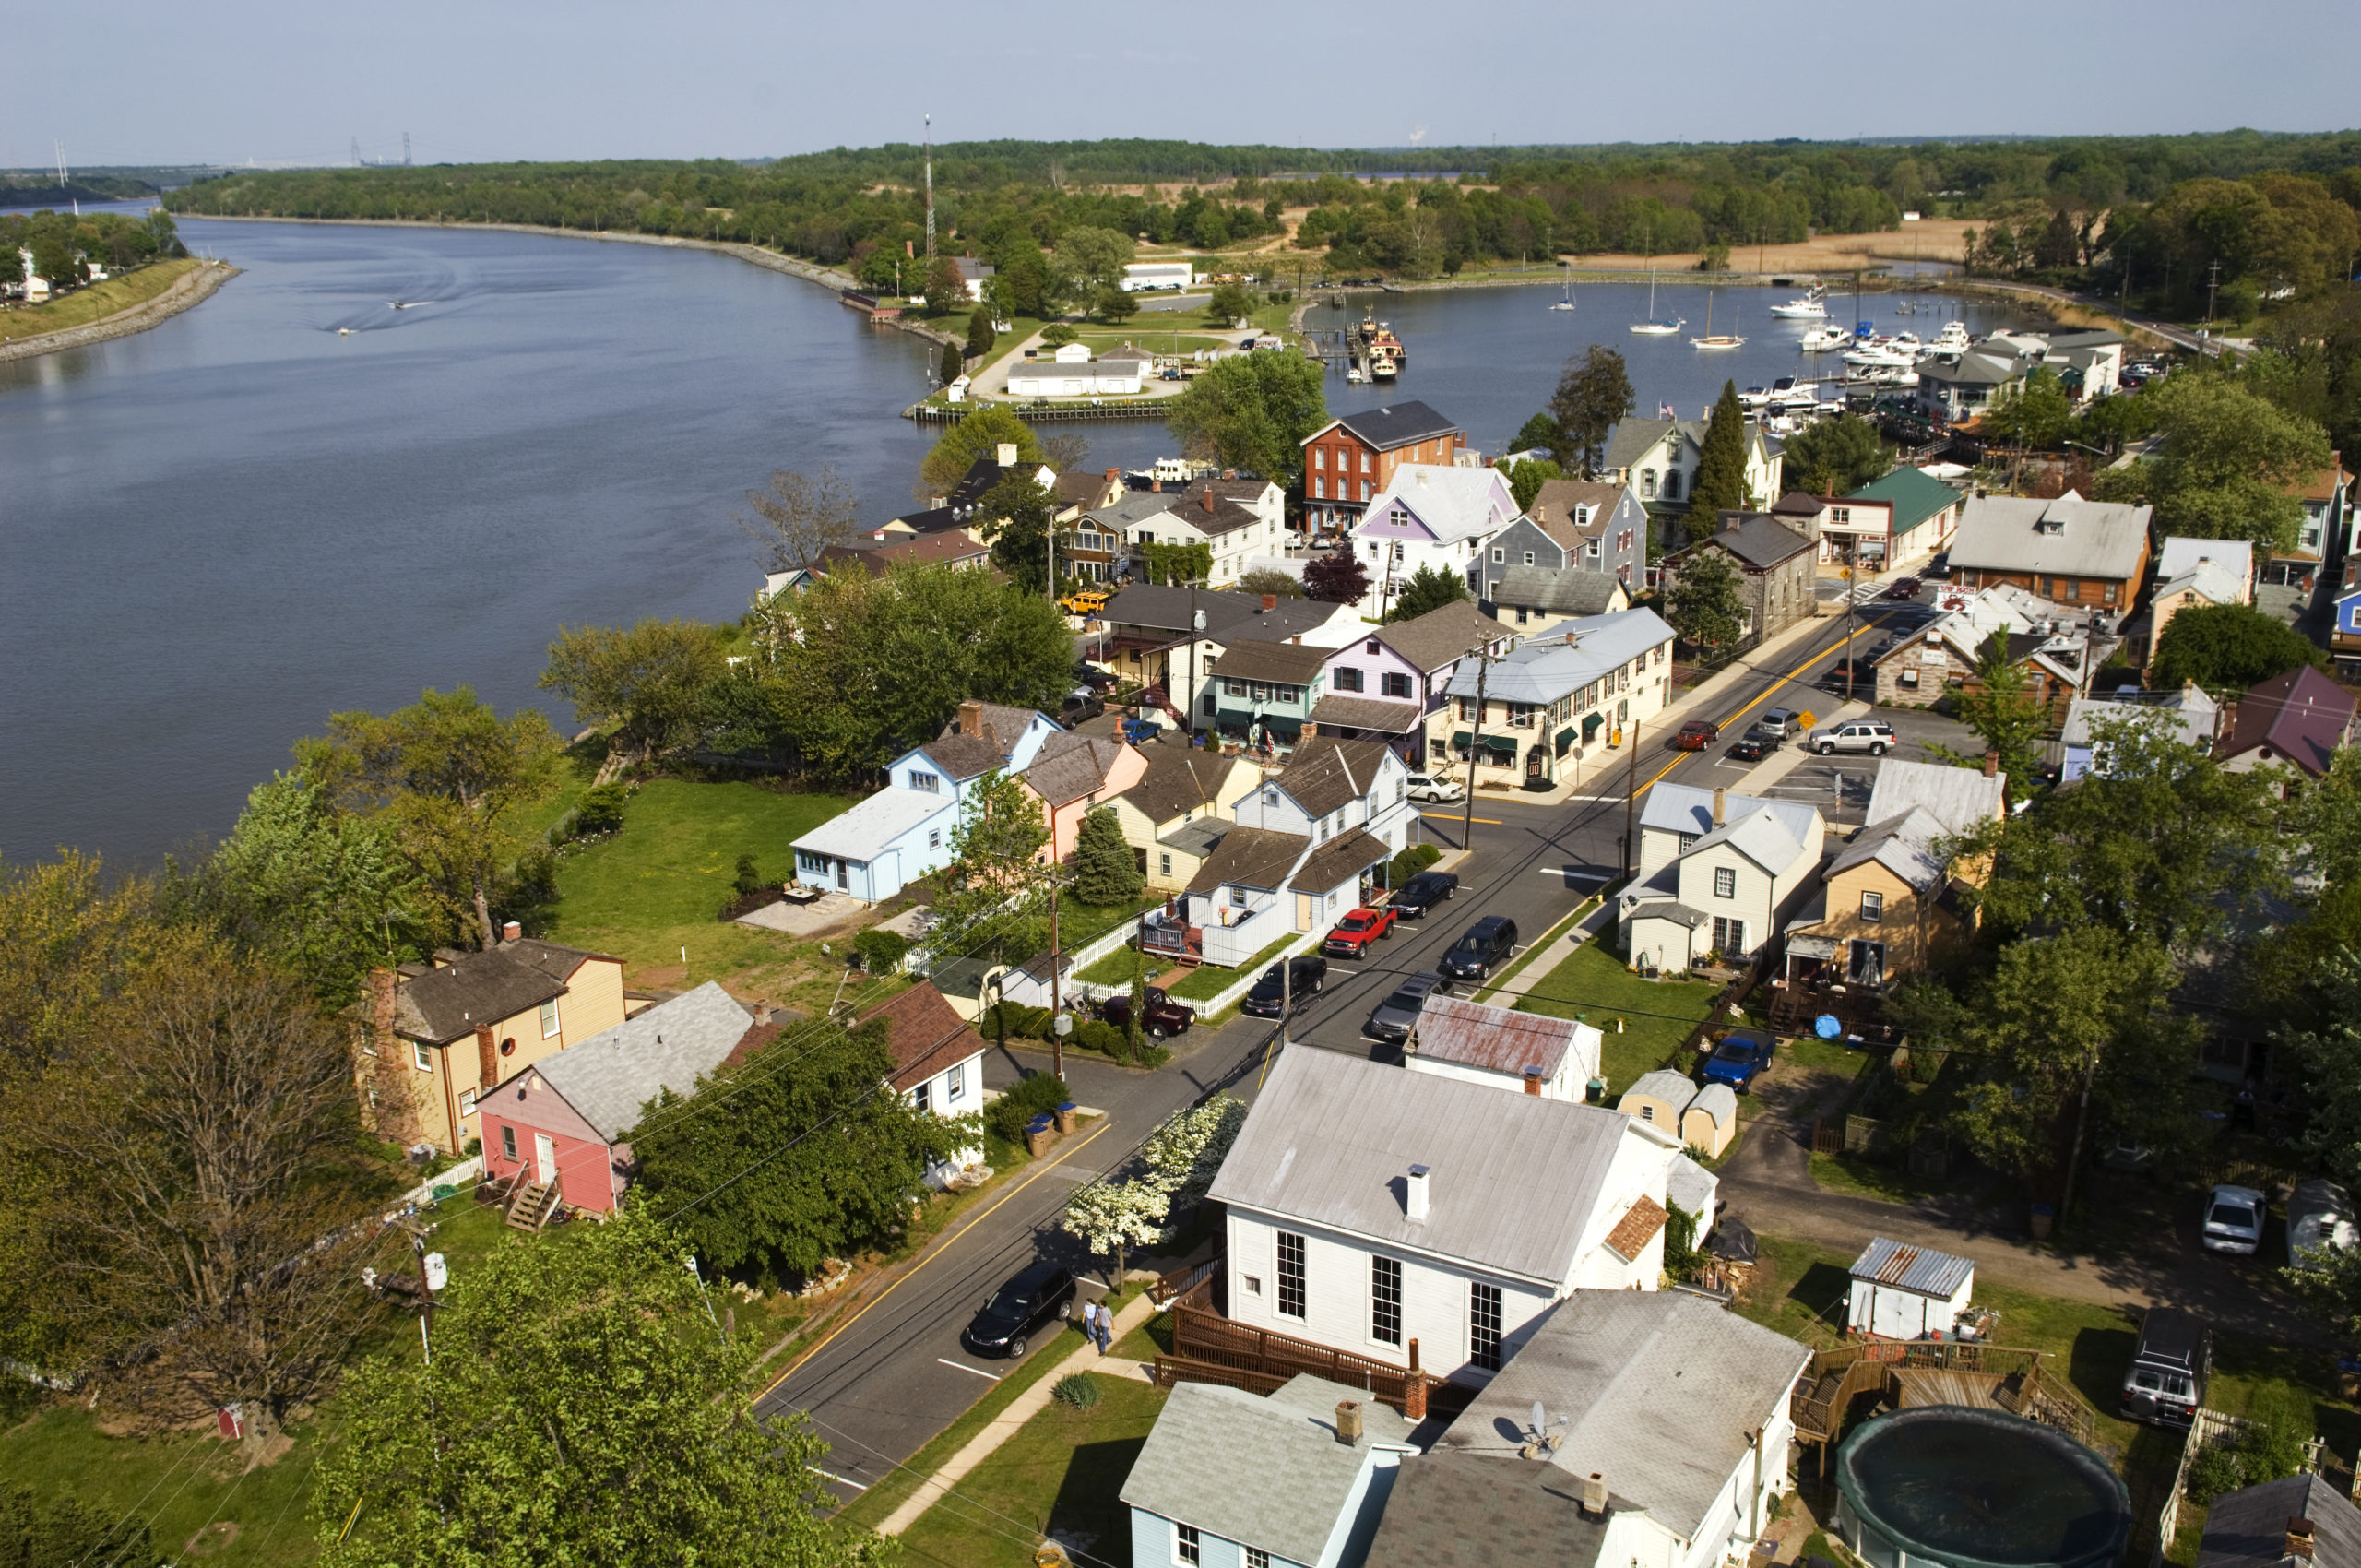 Plan A Trip To Chesapeake City, One Of Maryland's Best Small Towns